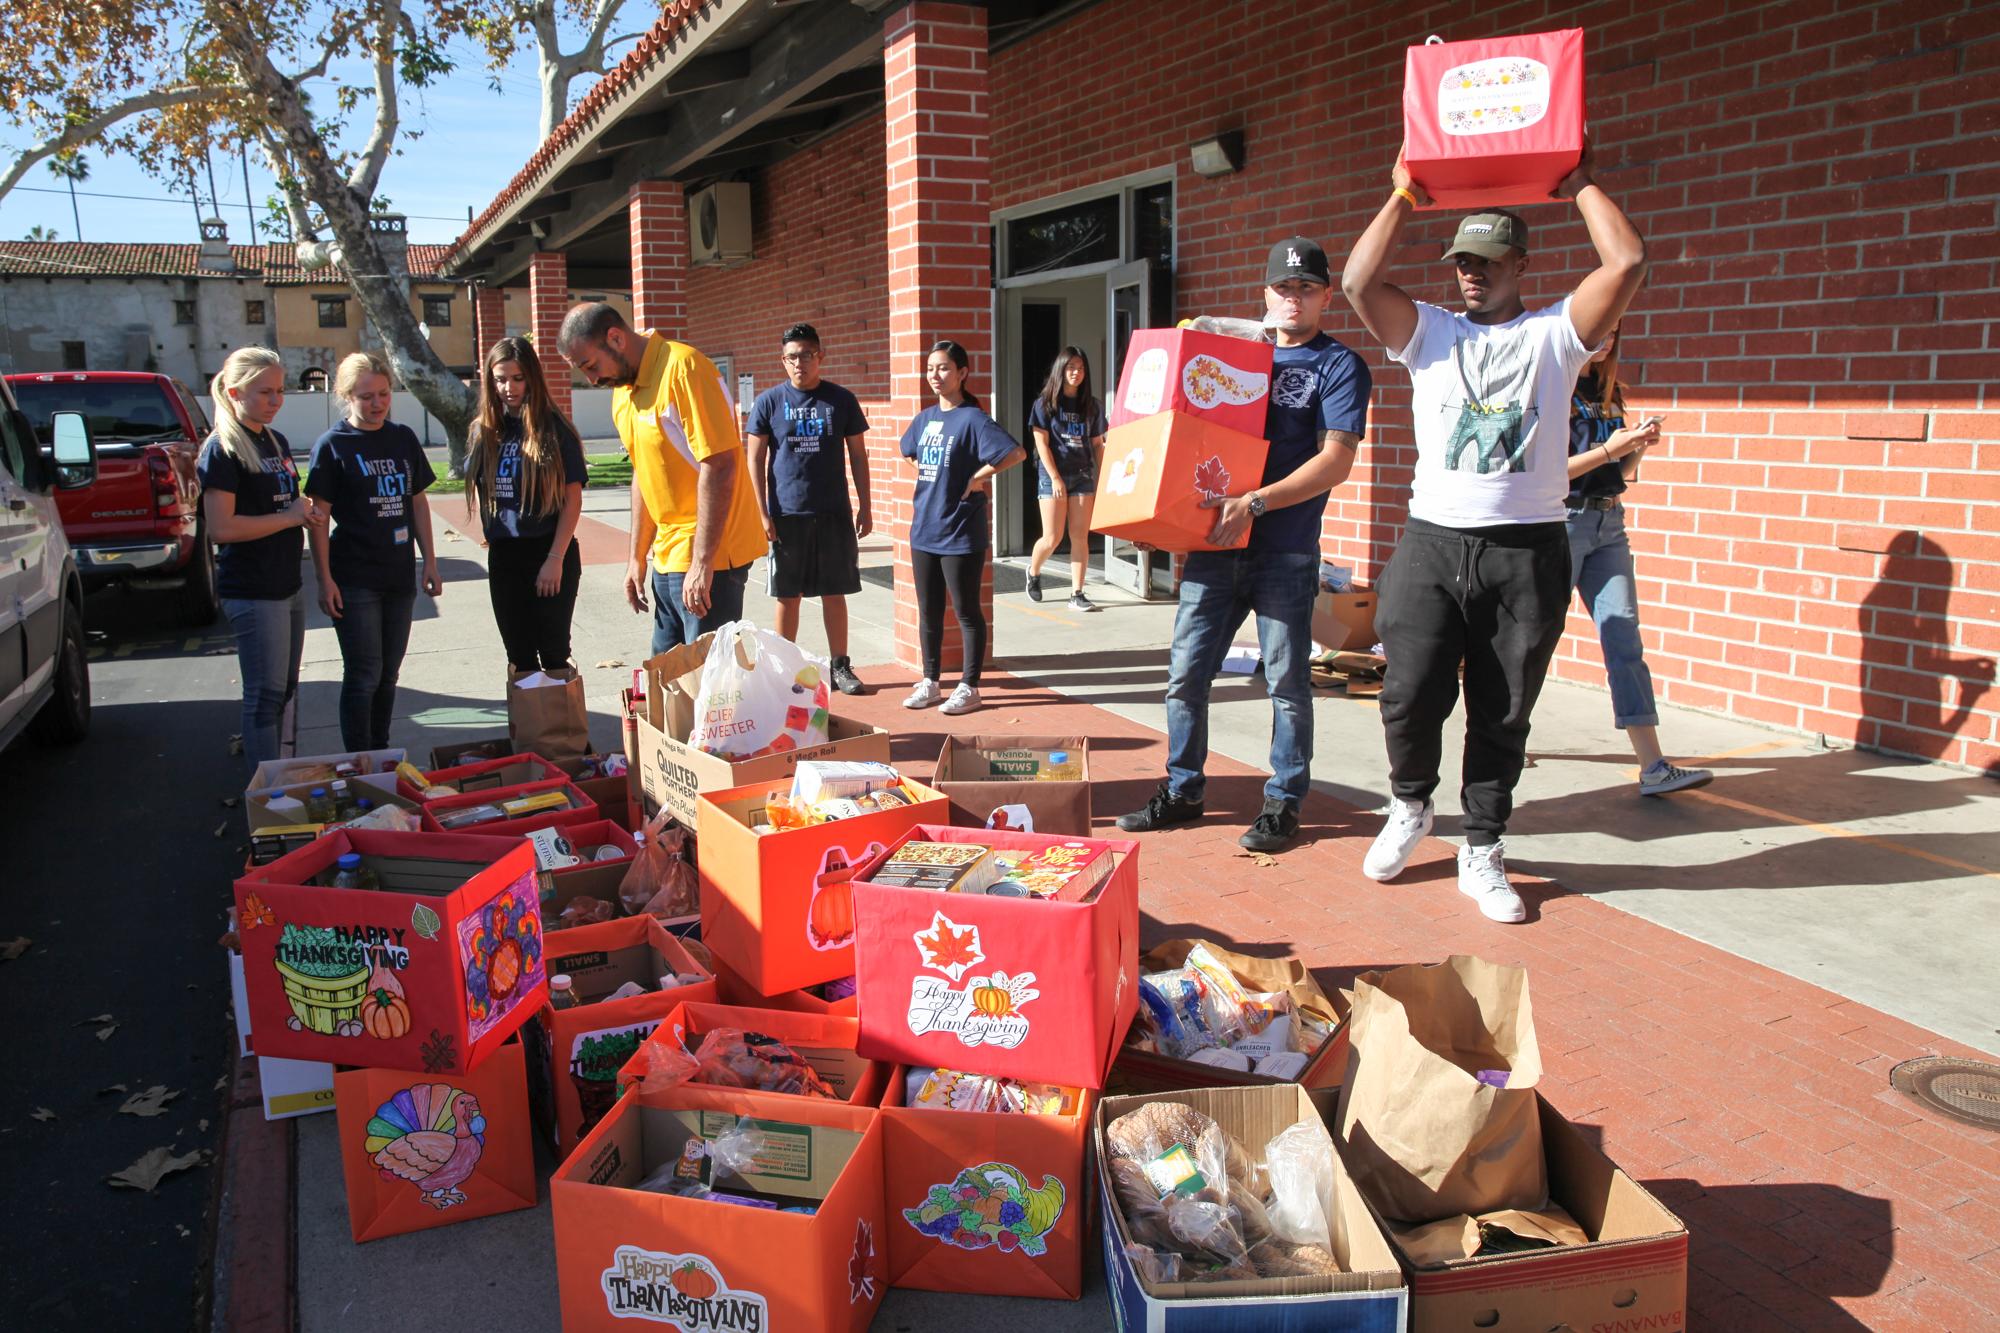 Marines and student volunteers pack up meal donations for families of the 1st Battalion, 11th Marines. Photo: Allison Jarrell